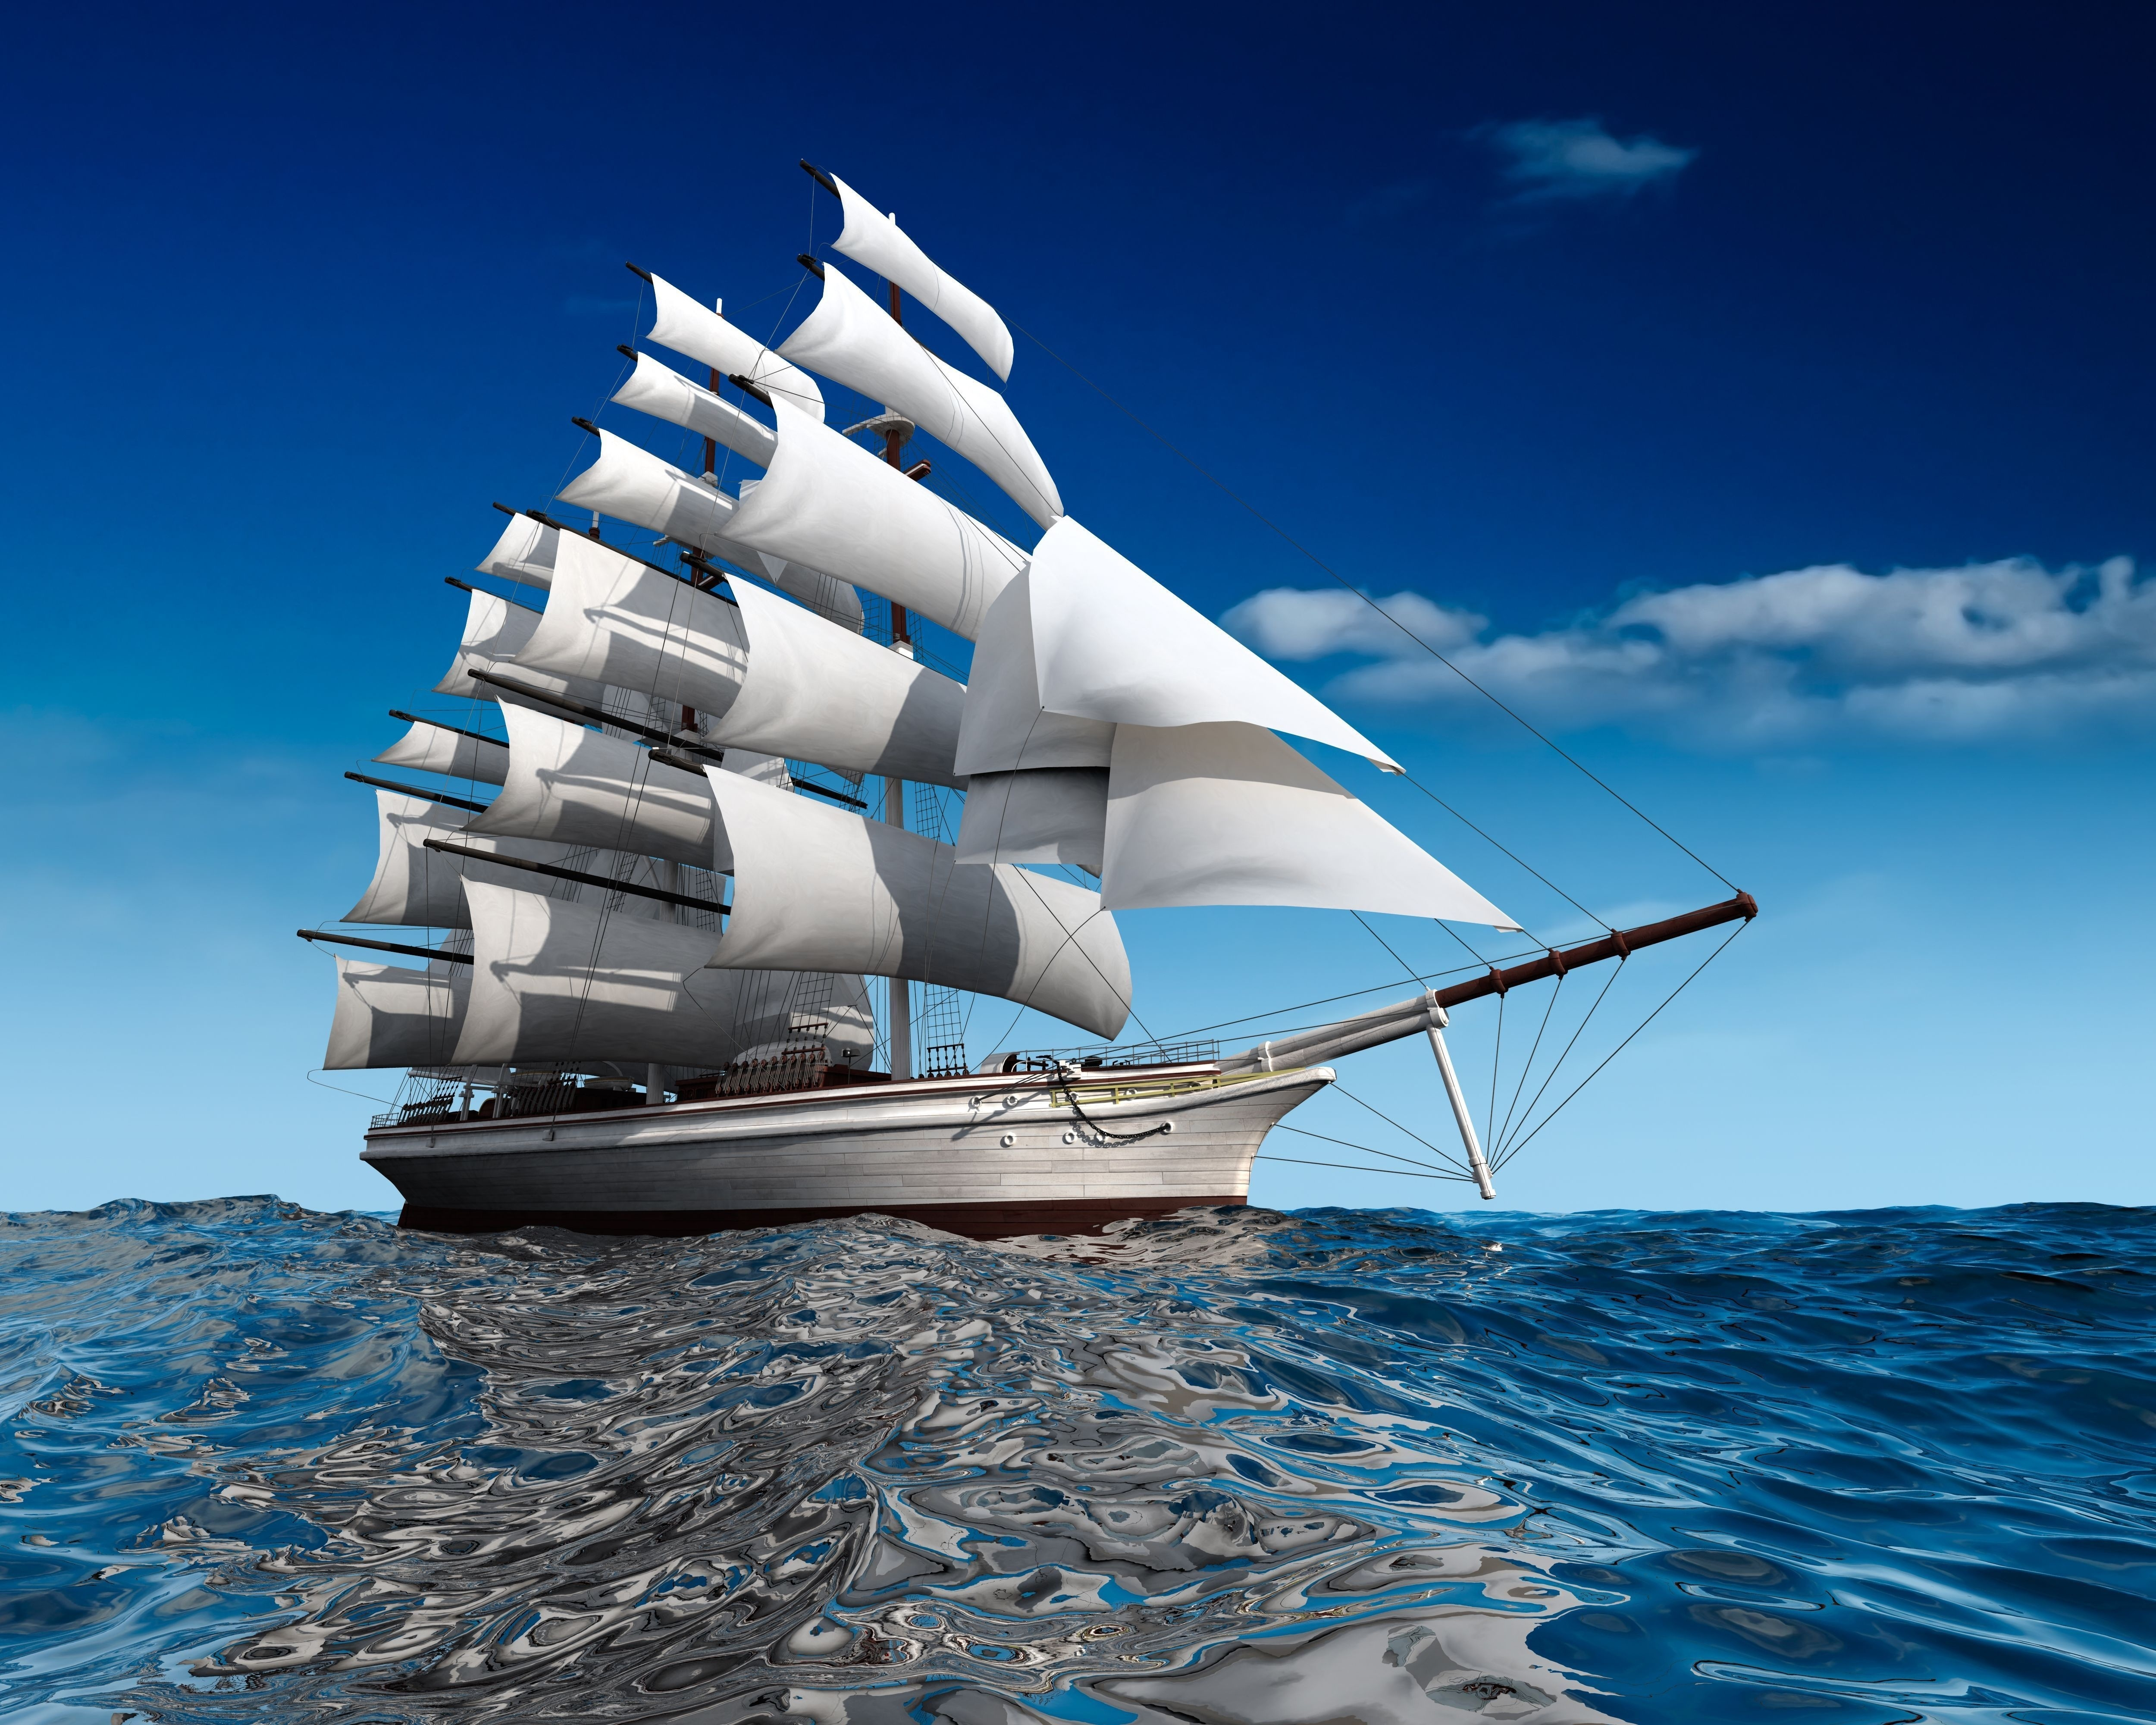 20565 download wallpaper Transport, Ships, Sea screensavers and pictures for free